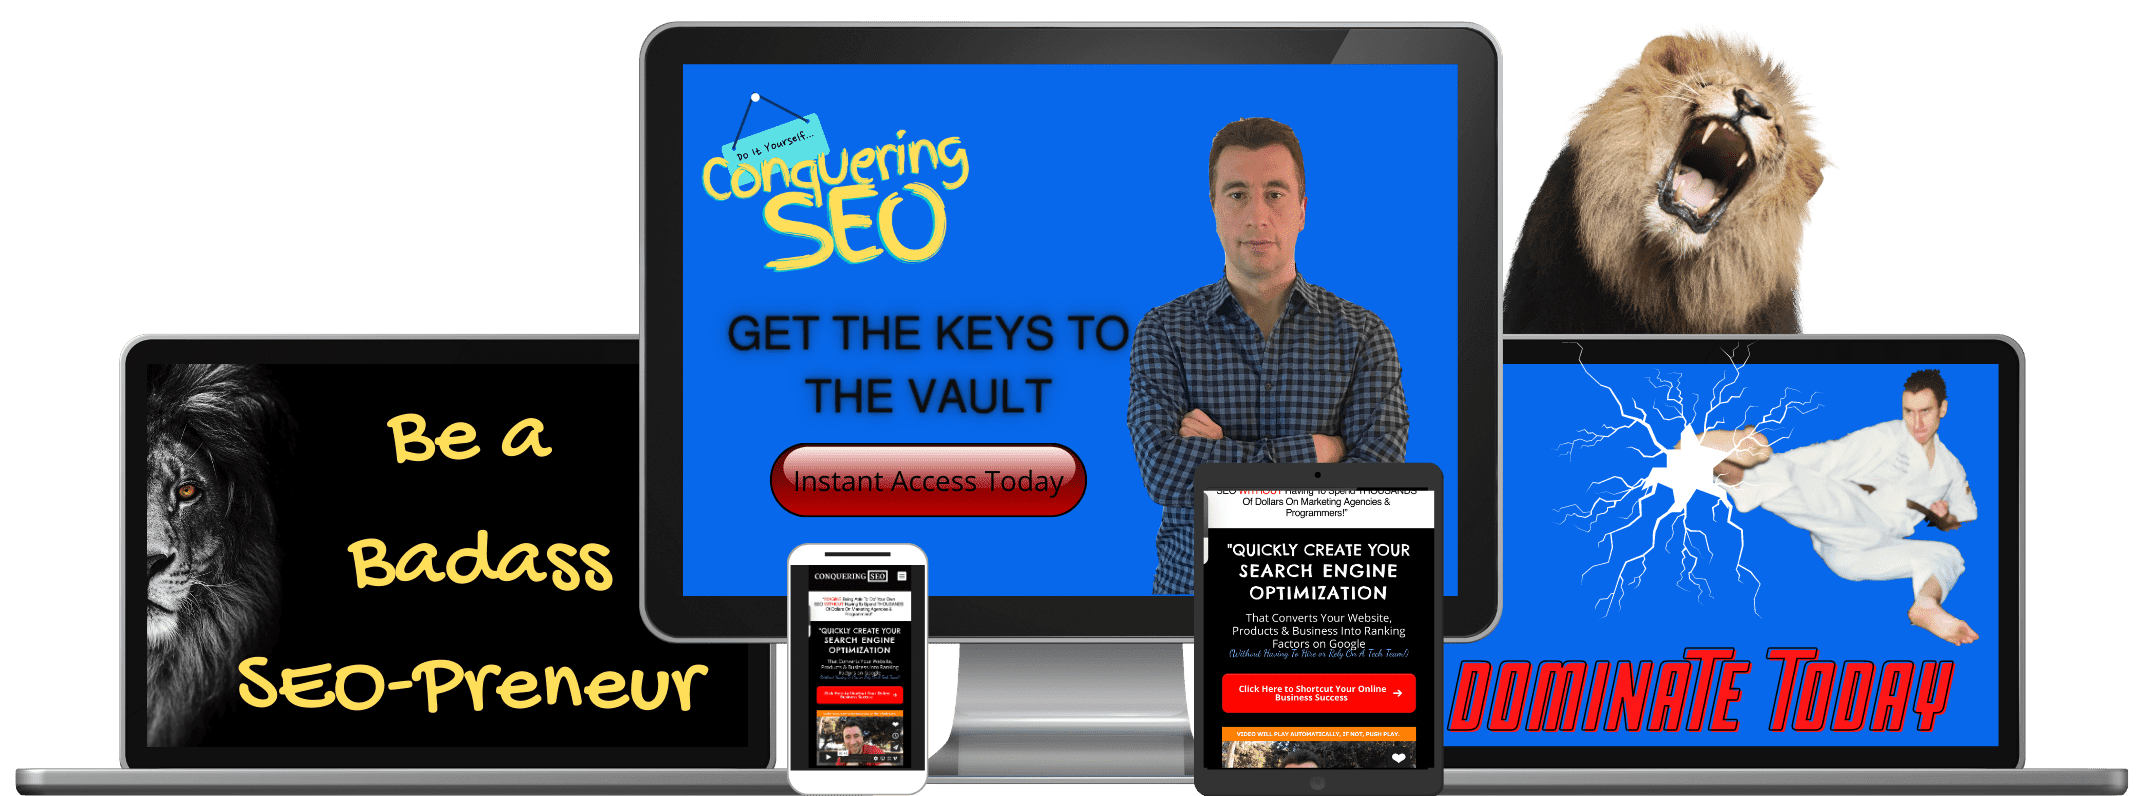 picture of conquering seo product images